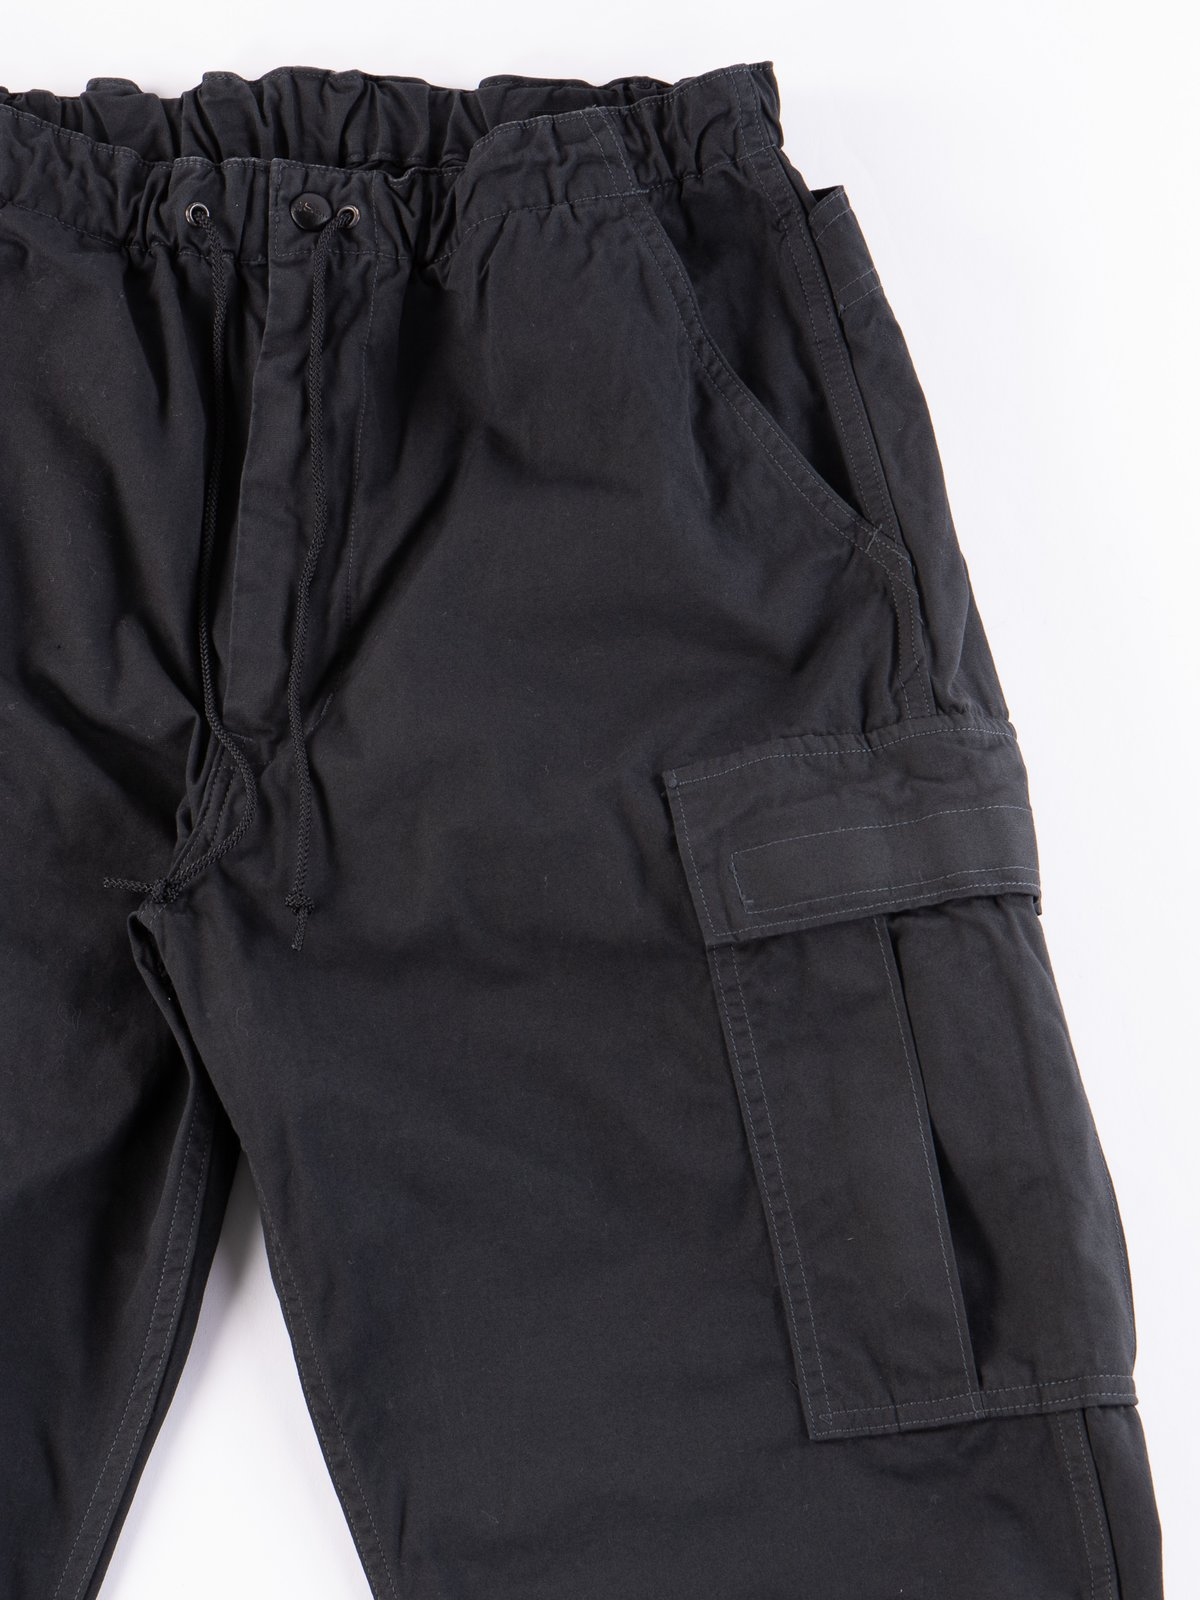 Grey Weather Cloth Easy Cargo Pant - Image 4